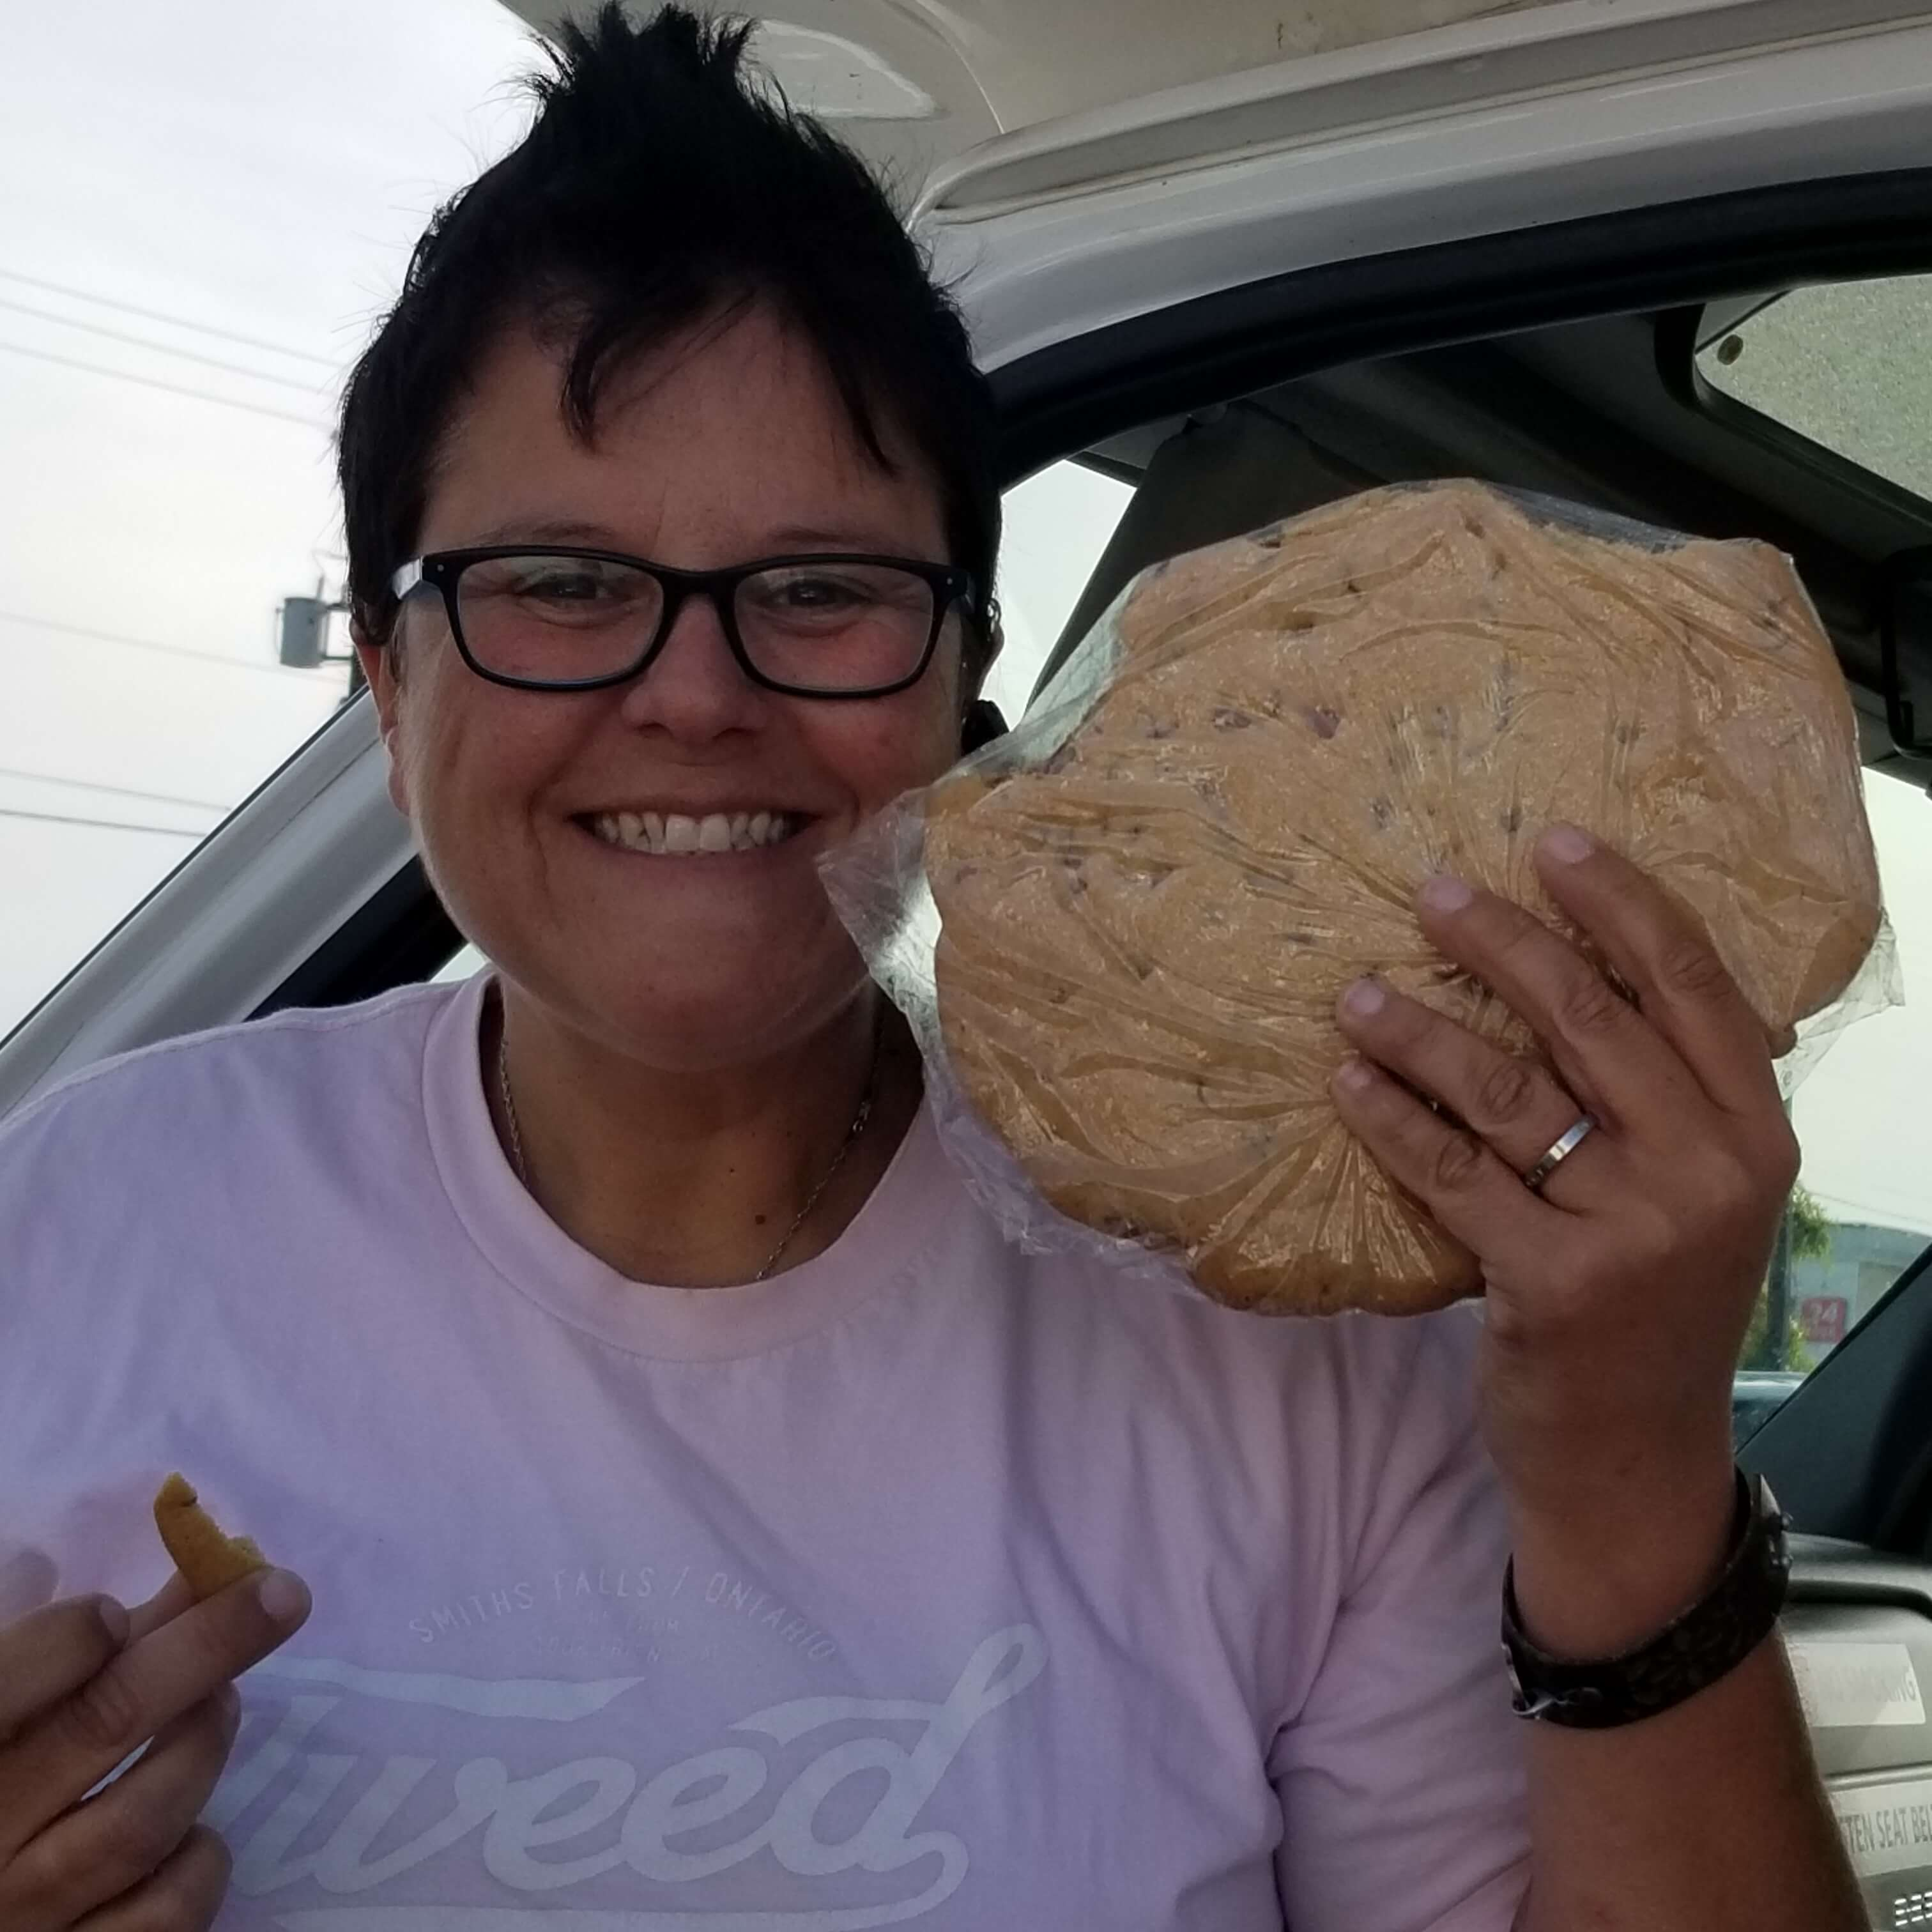 Driver Dianne holding giant cookie